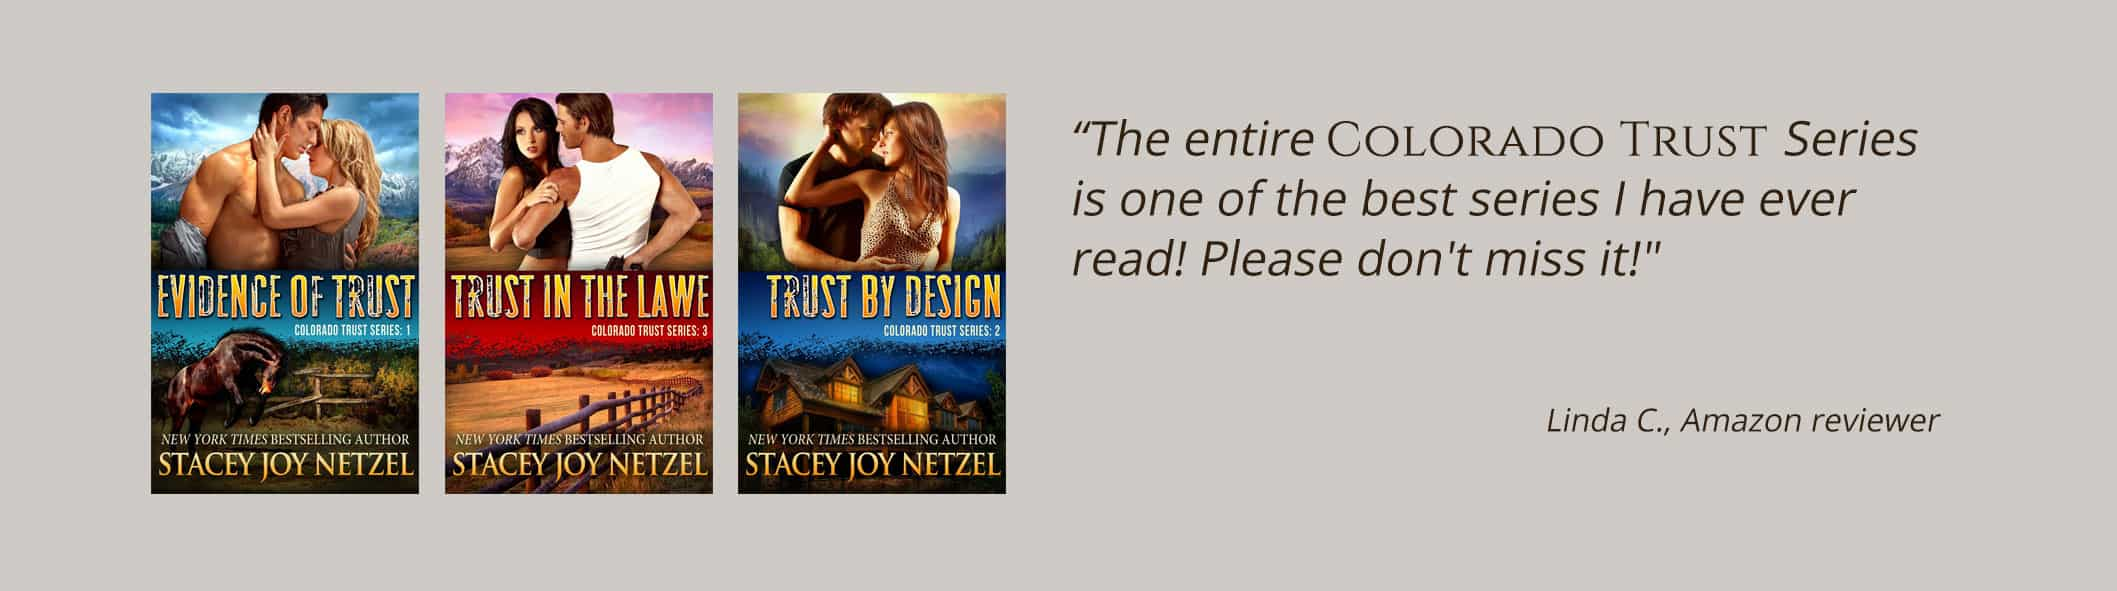 Colorado Trust Series by Stacey Joy Netzel